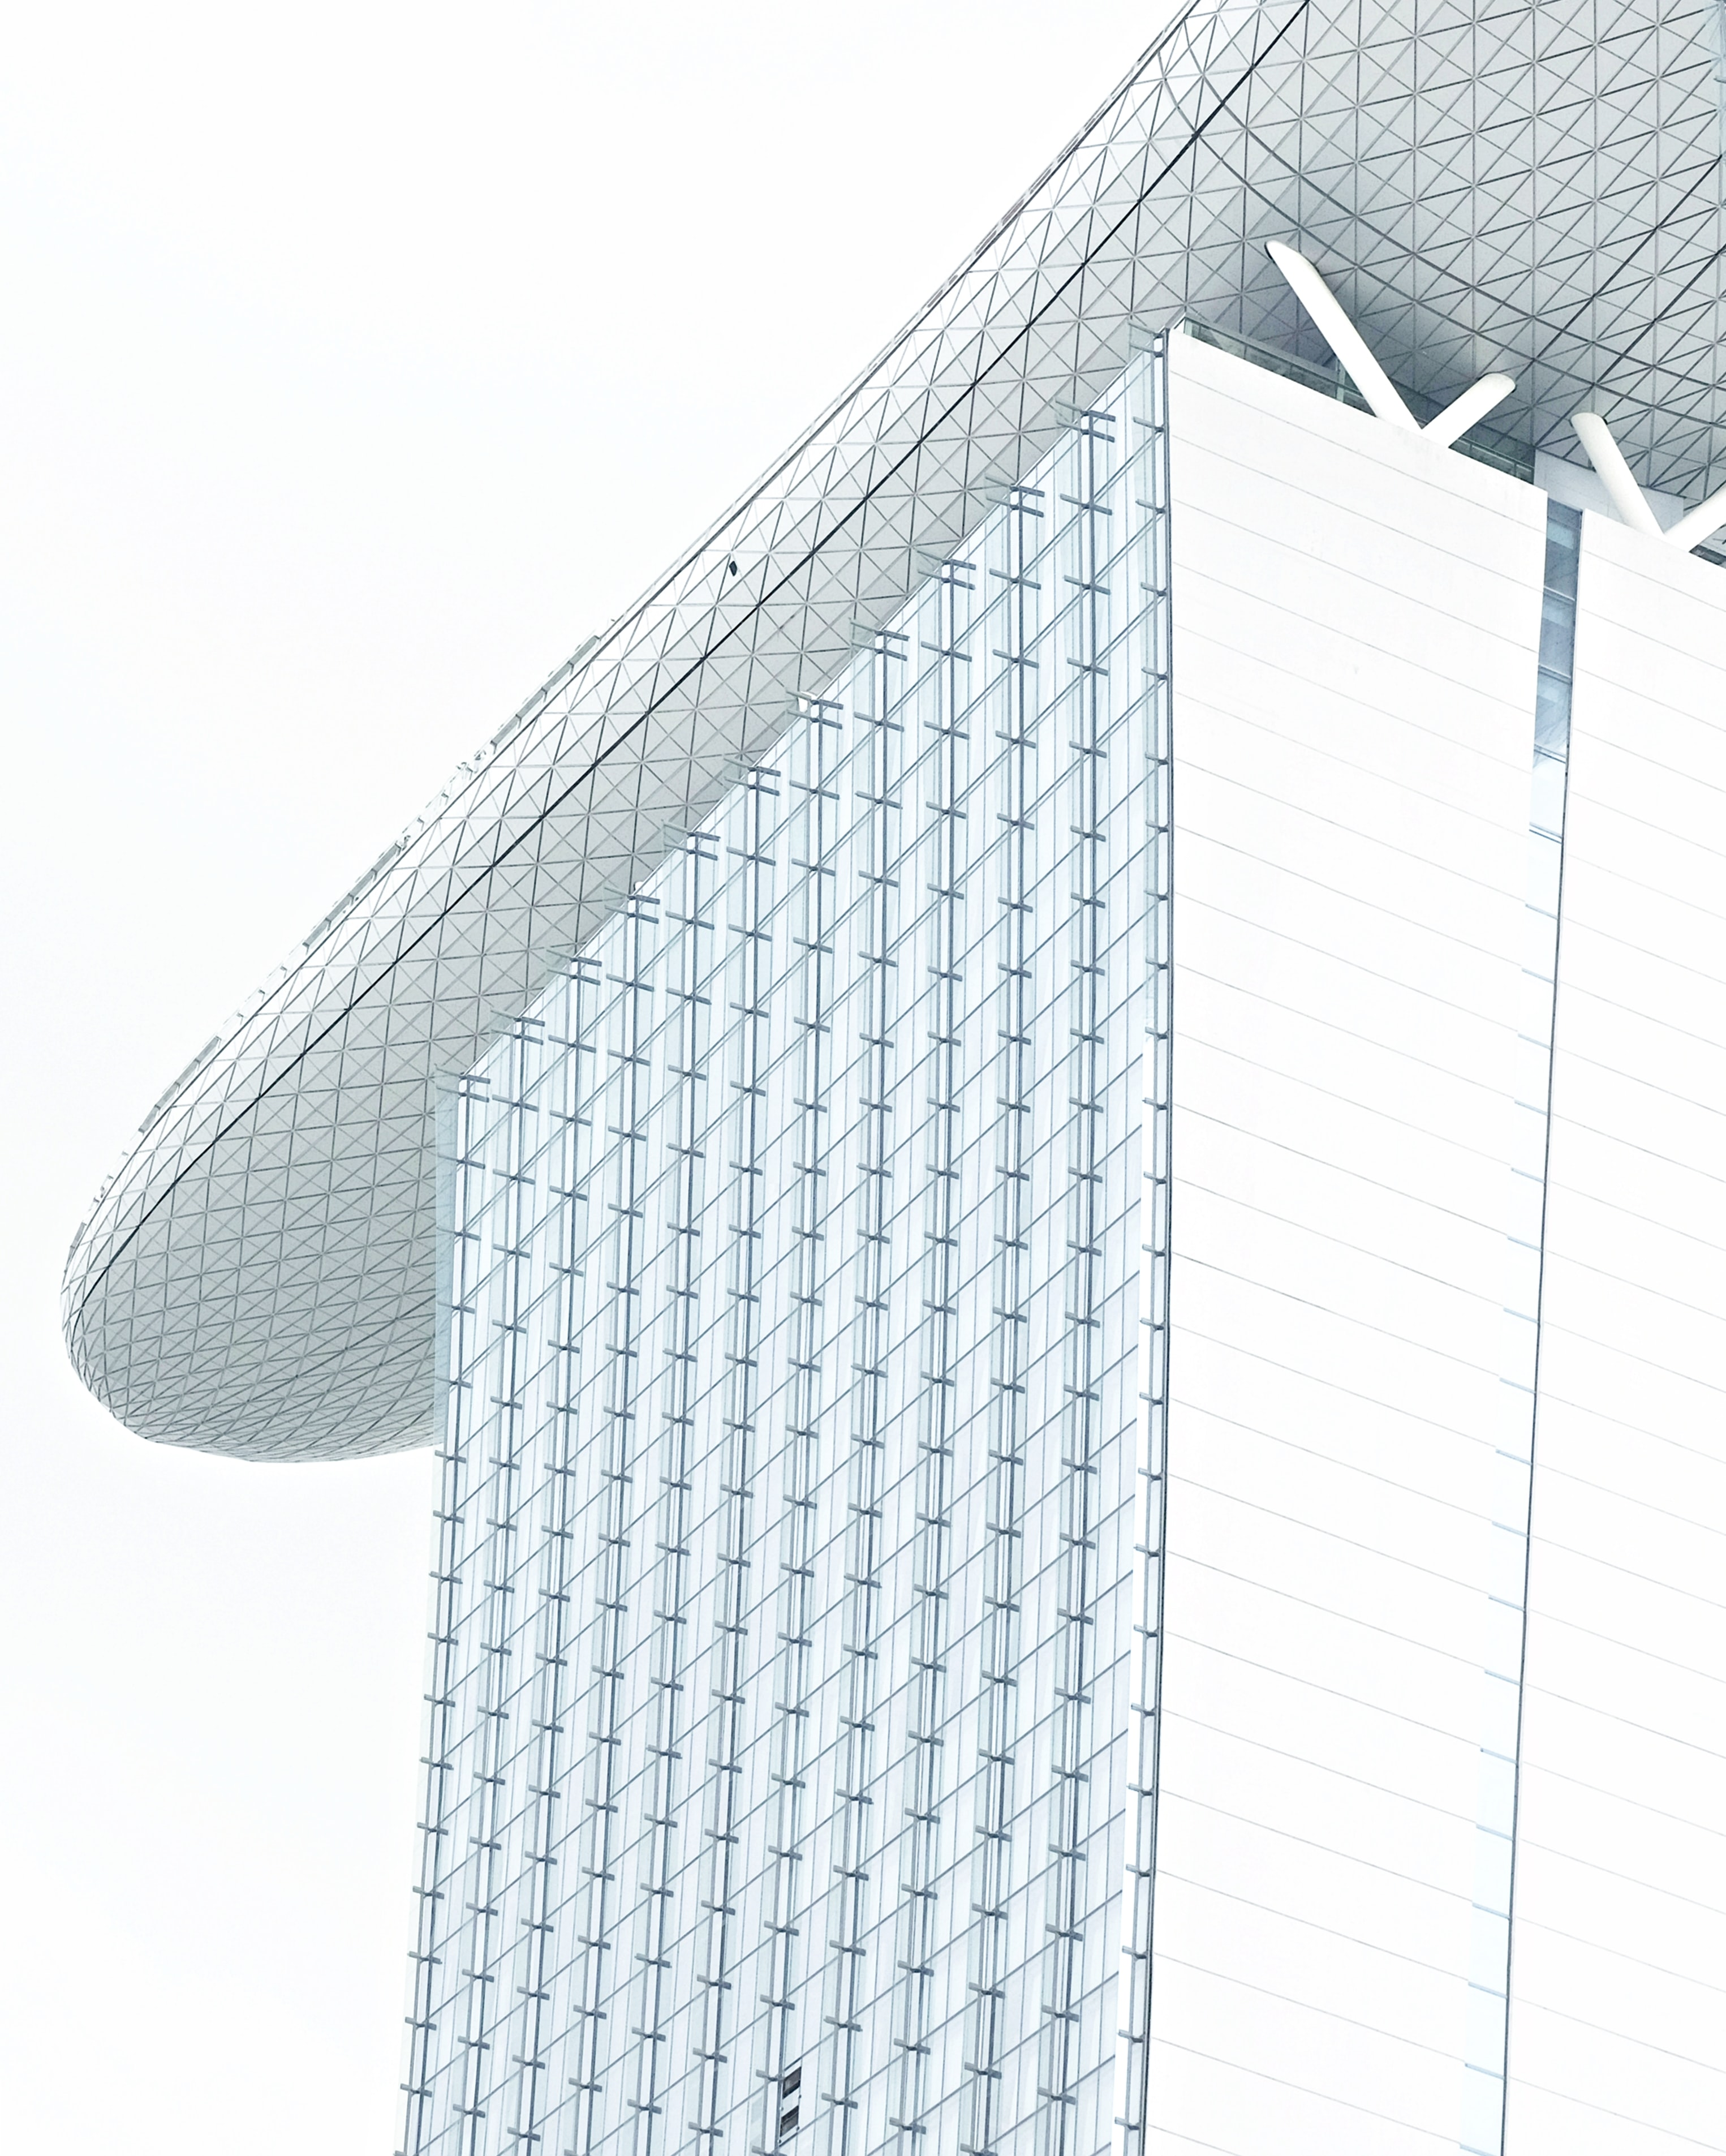 glass building under white clouds